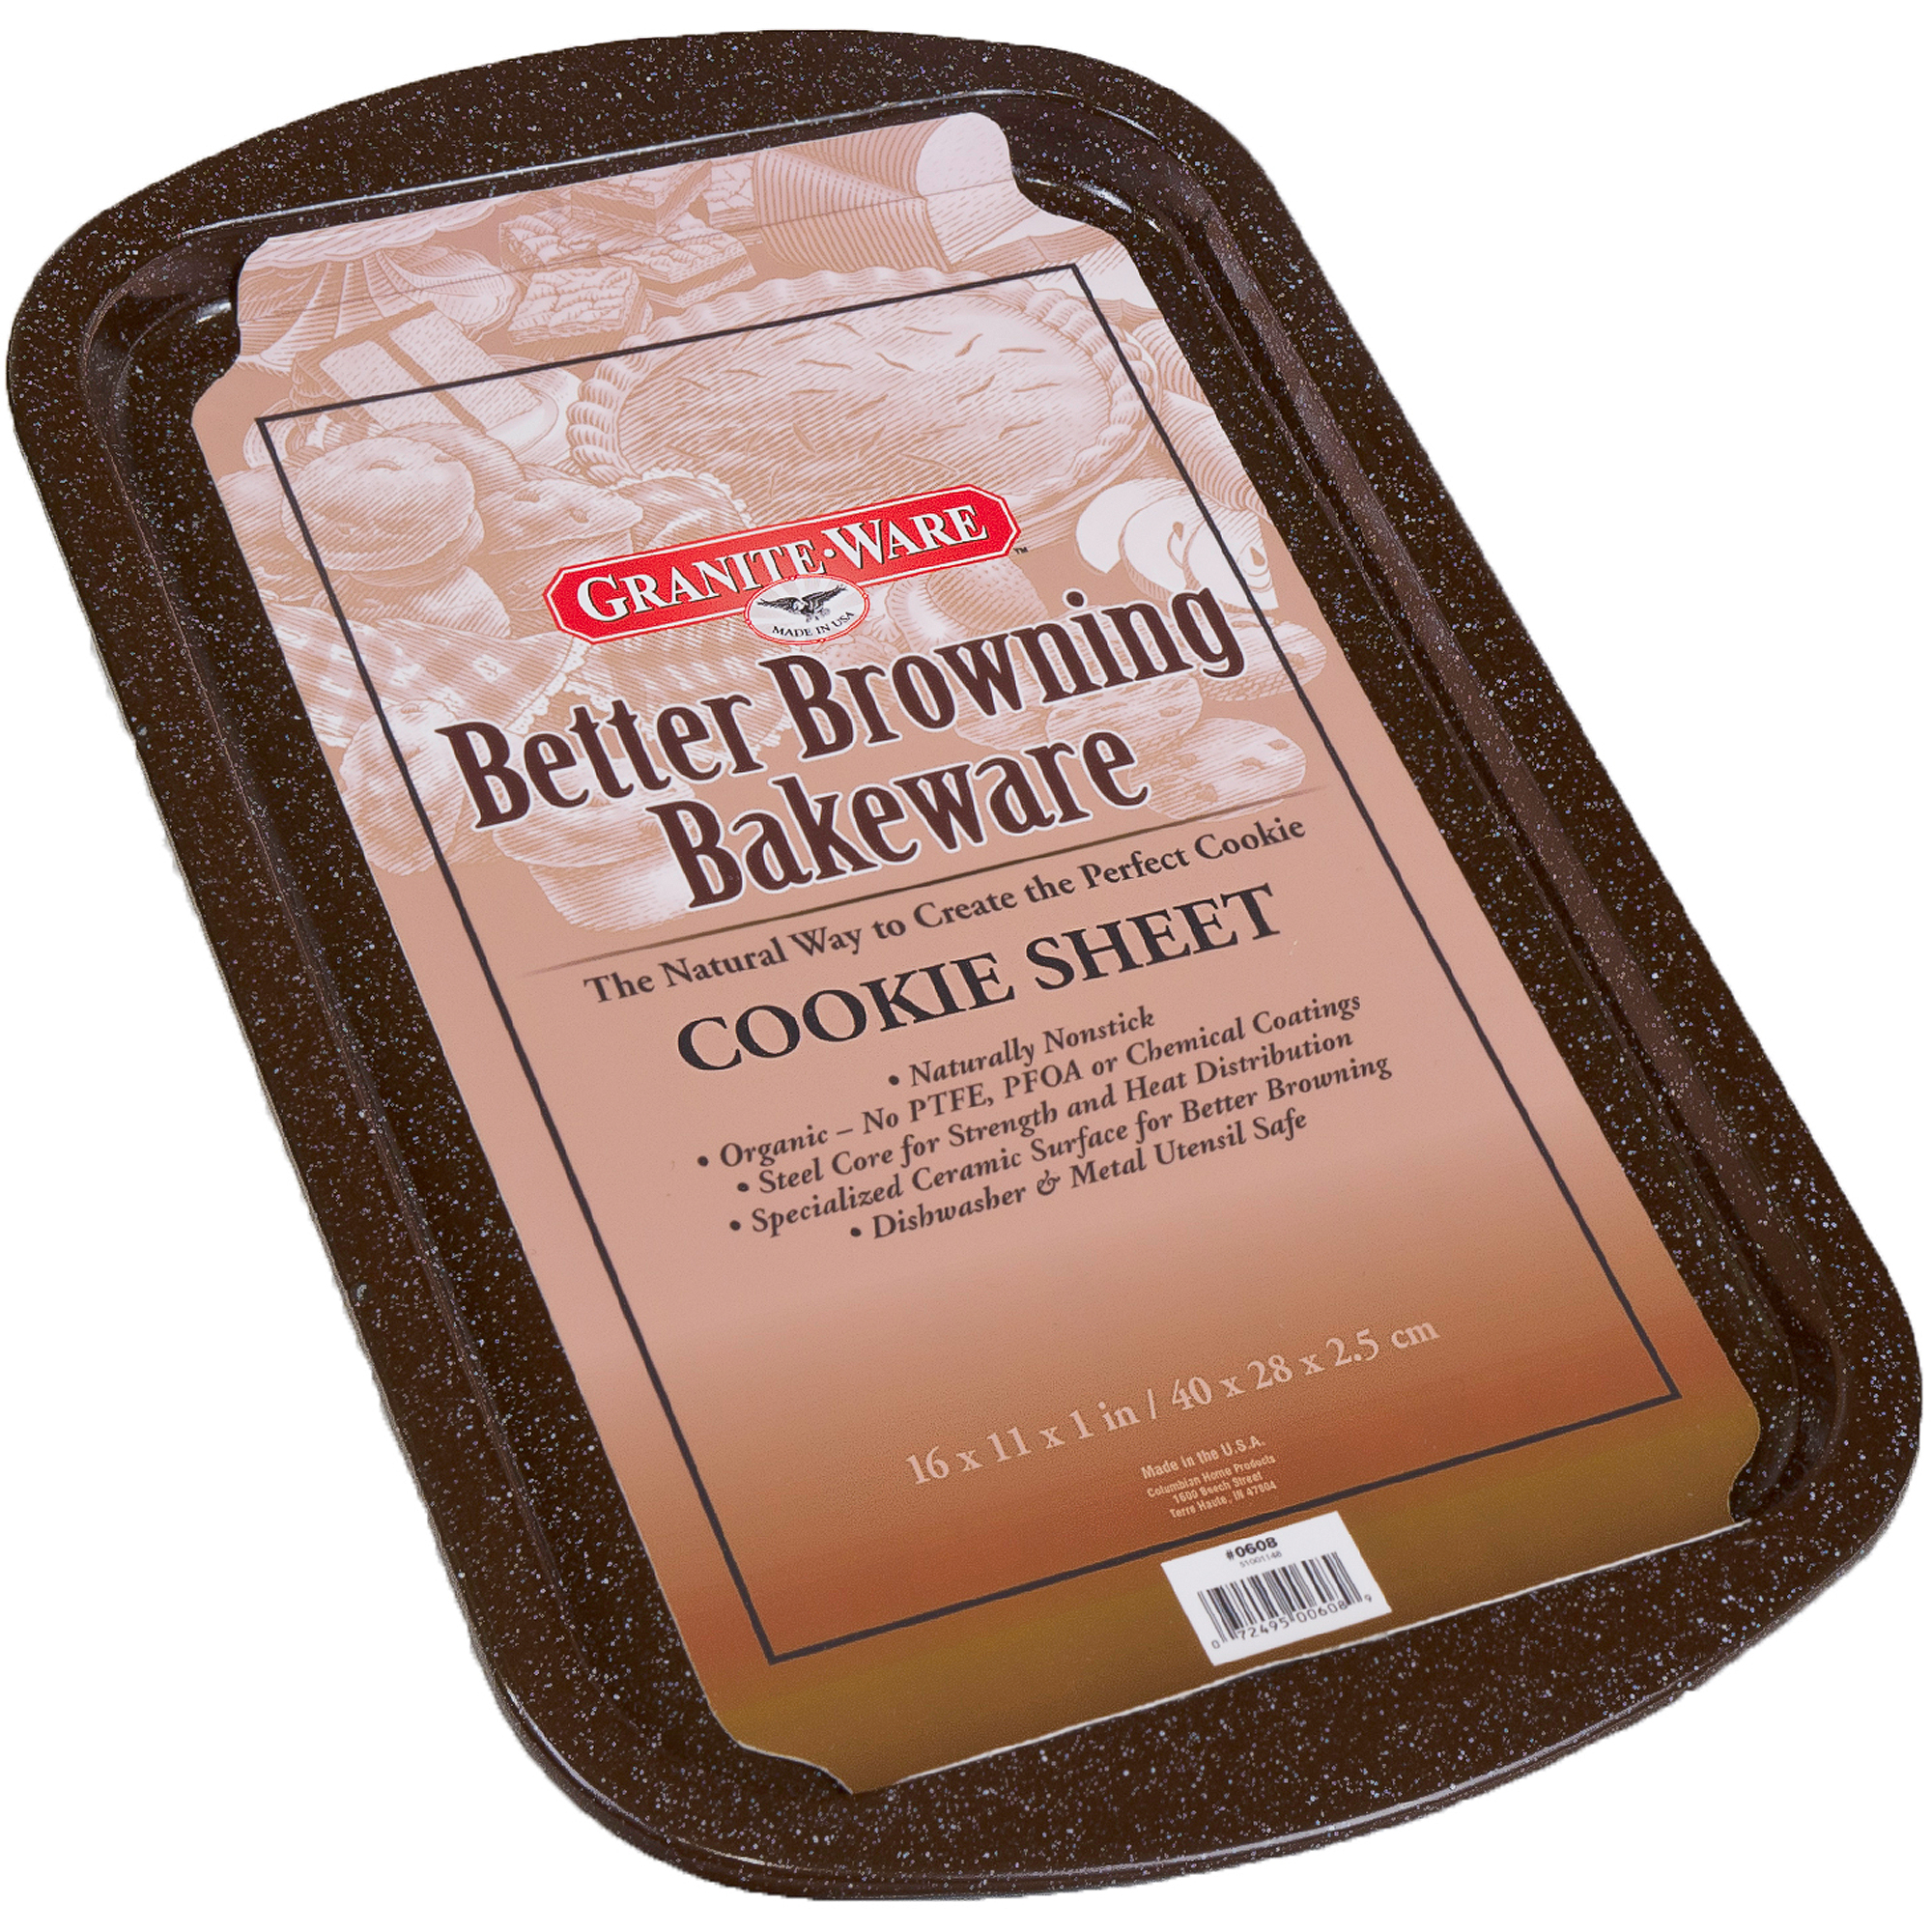 Granite Ware Better Browning Bakeware Large Cookie Sheet, Brown